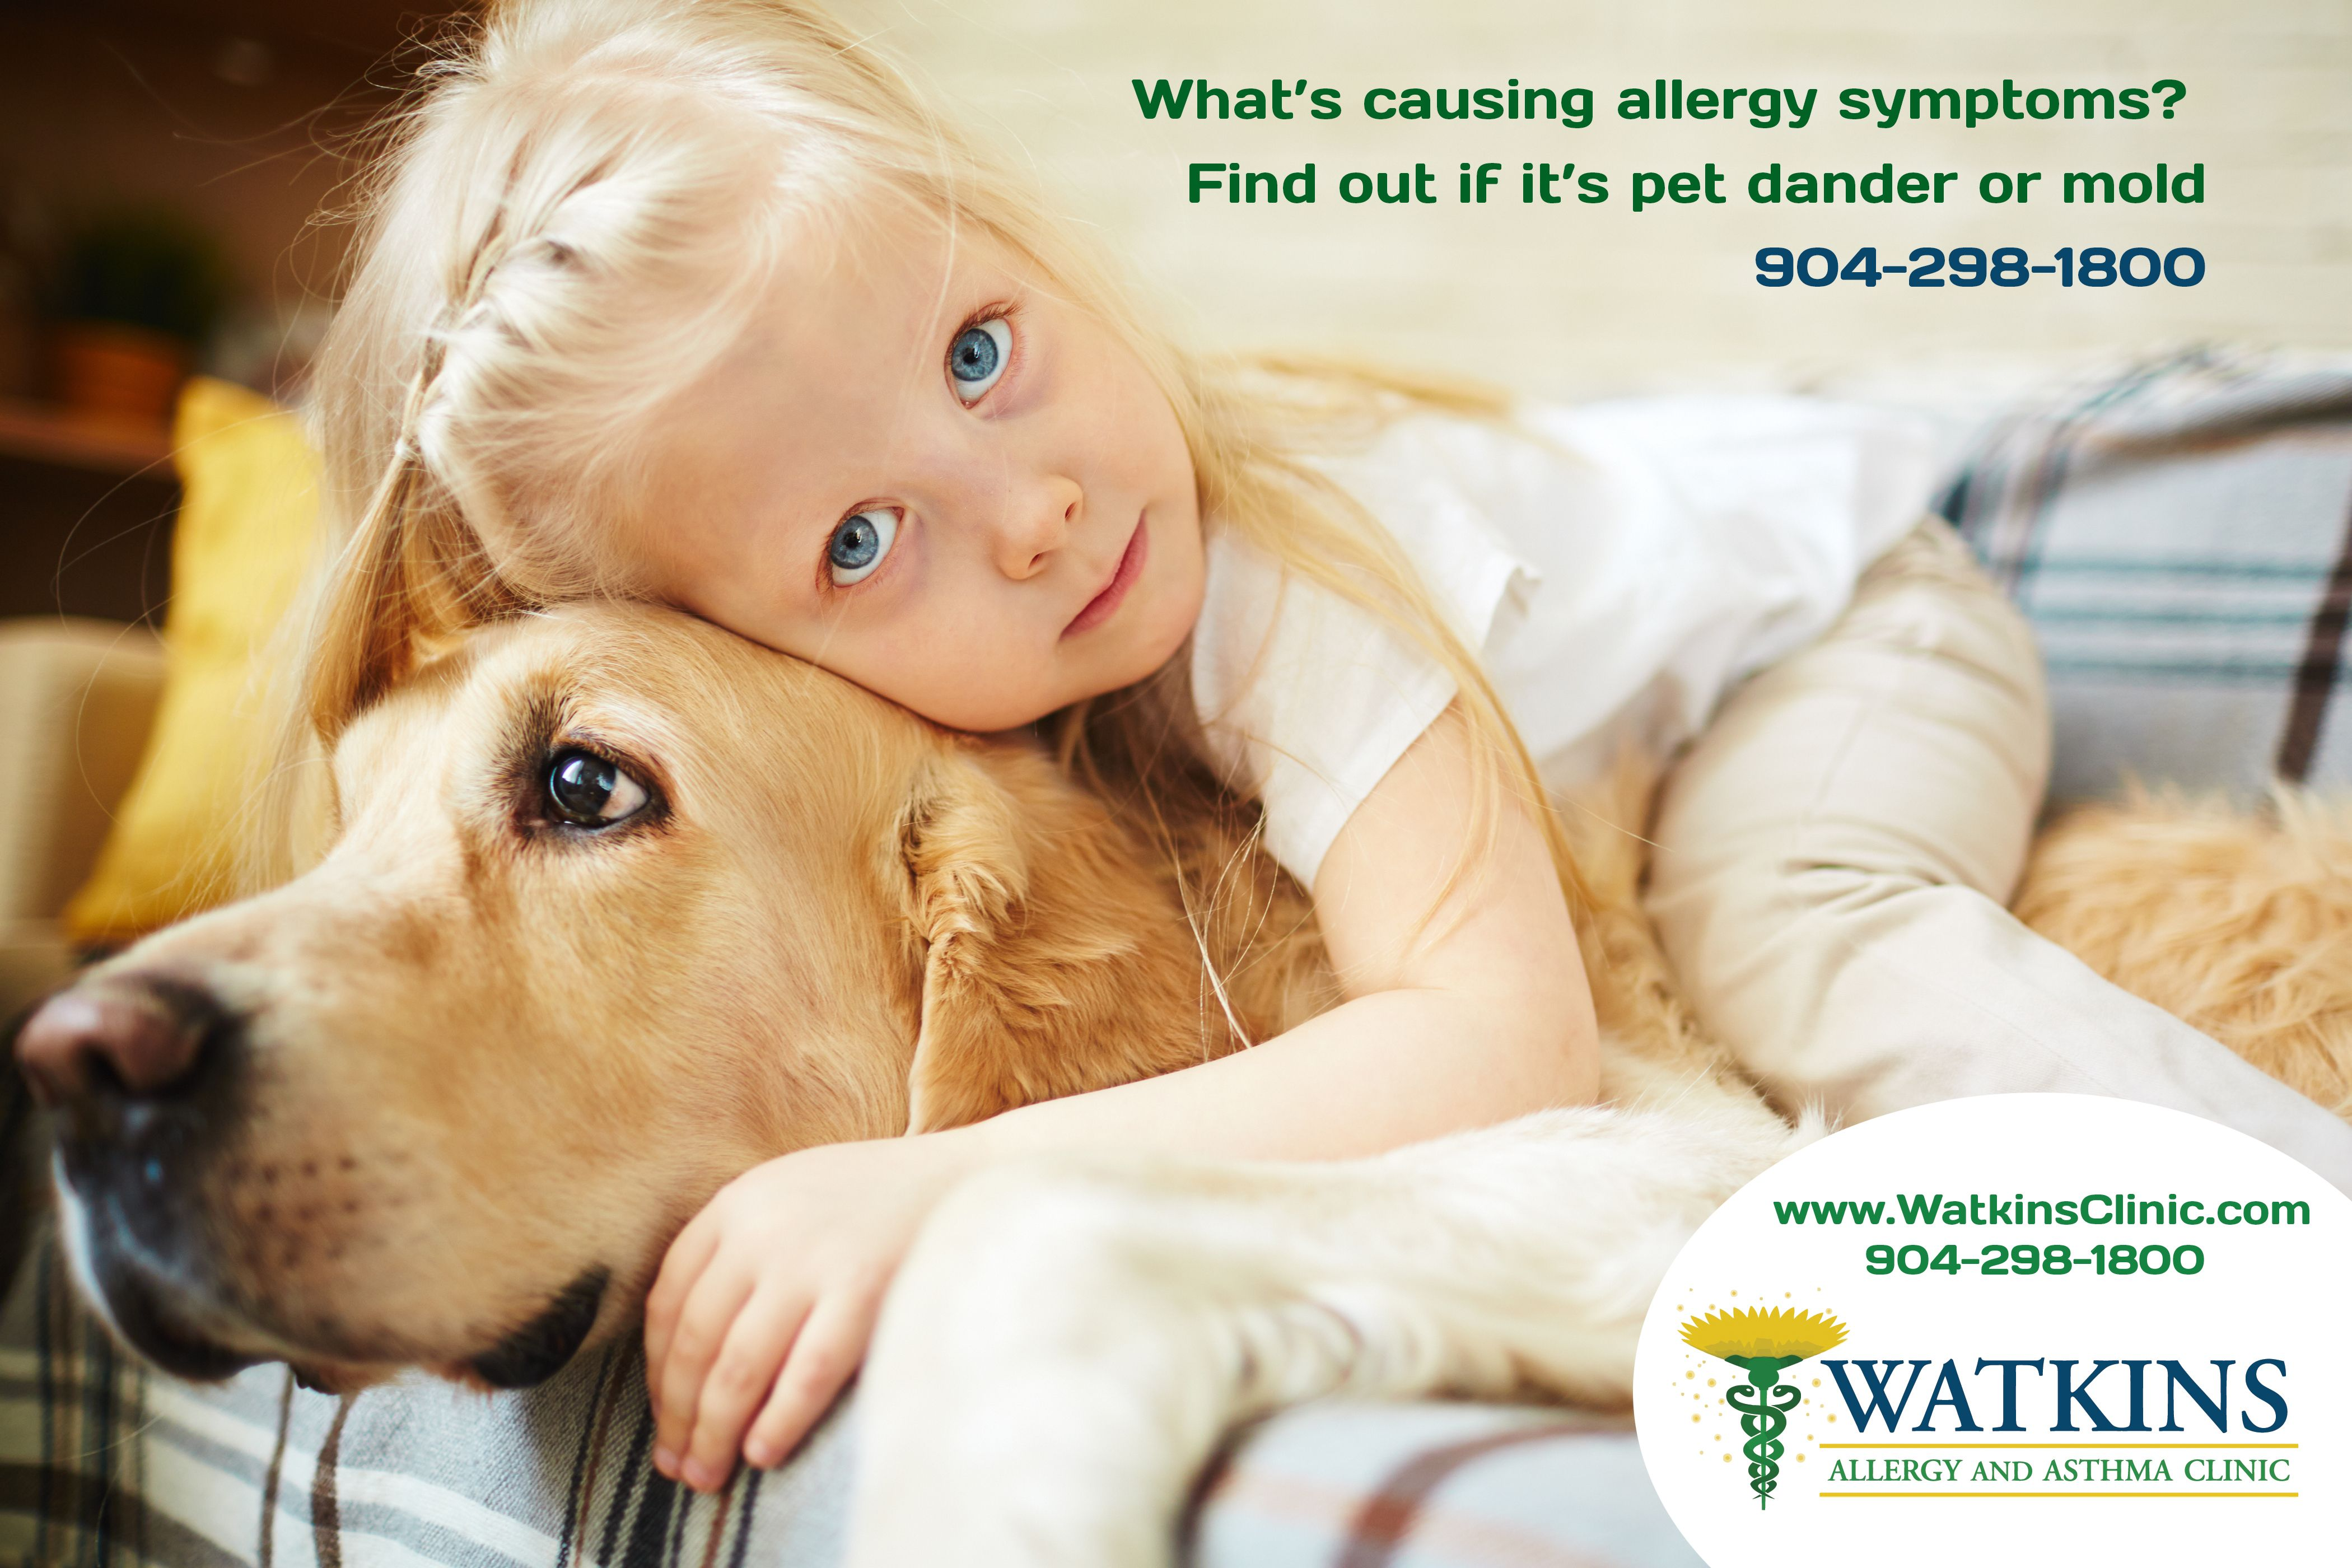 It May Be Difficult To Determine The Cause Of Symptoms In Children Allergies And Asthma Are Serious Health Issues Yet Many Remai Hayvan Evcil Hayvanlar Cocuk